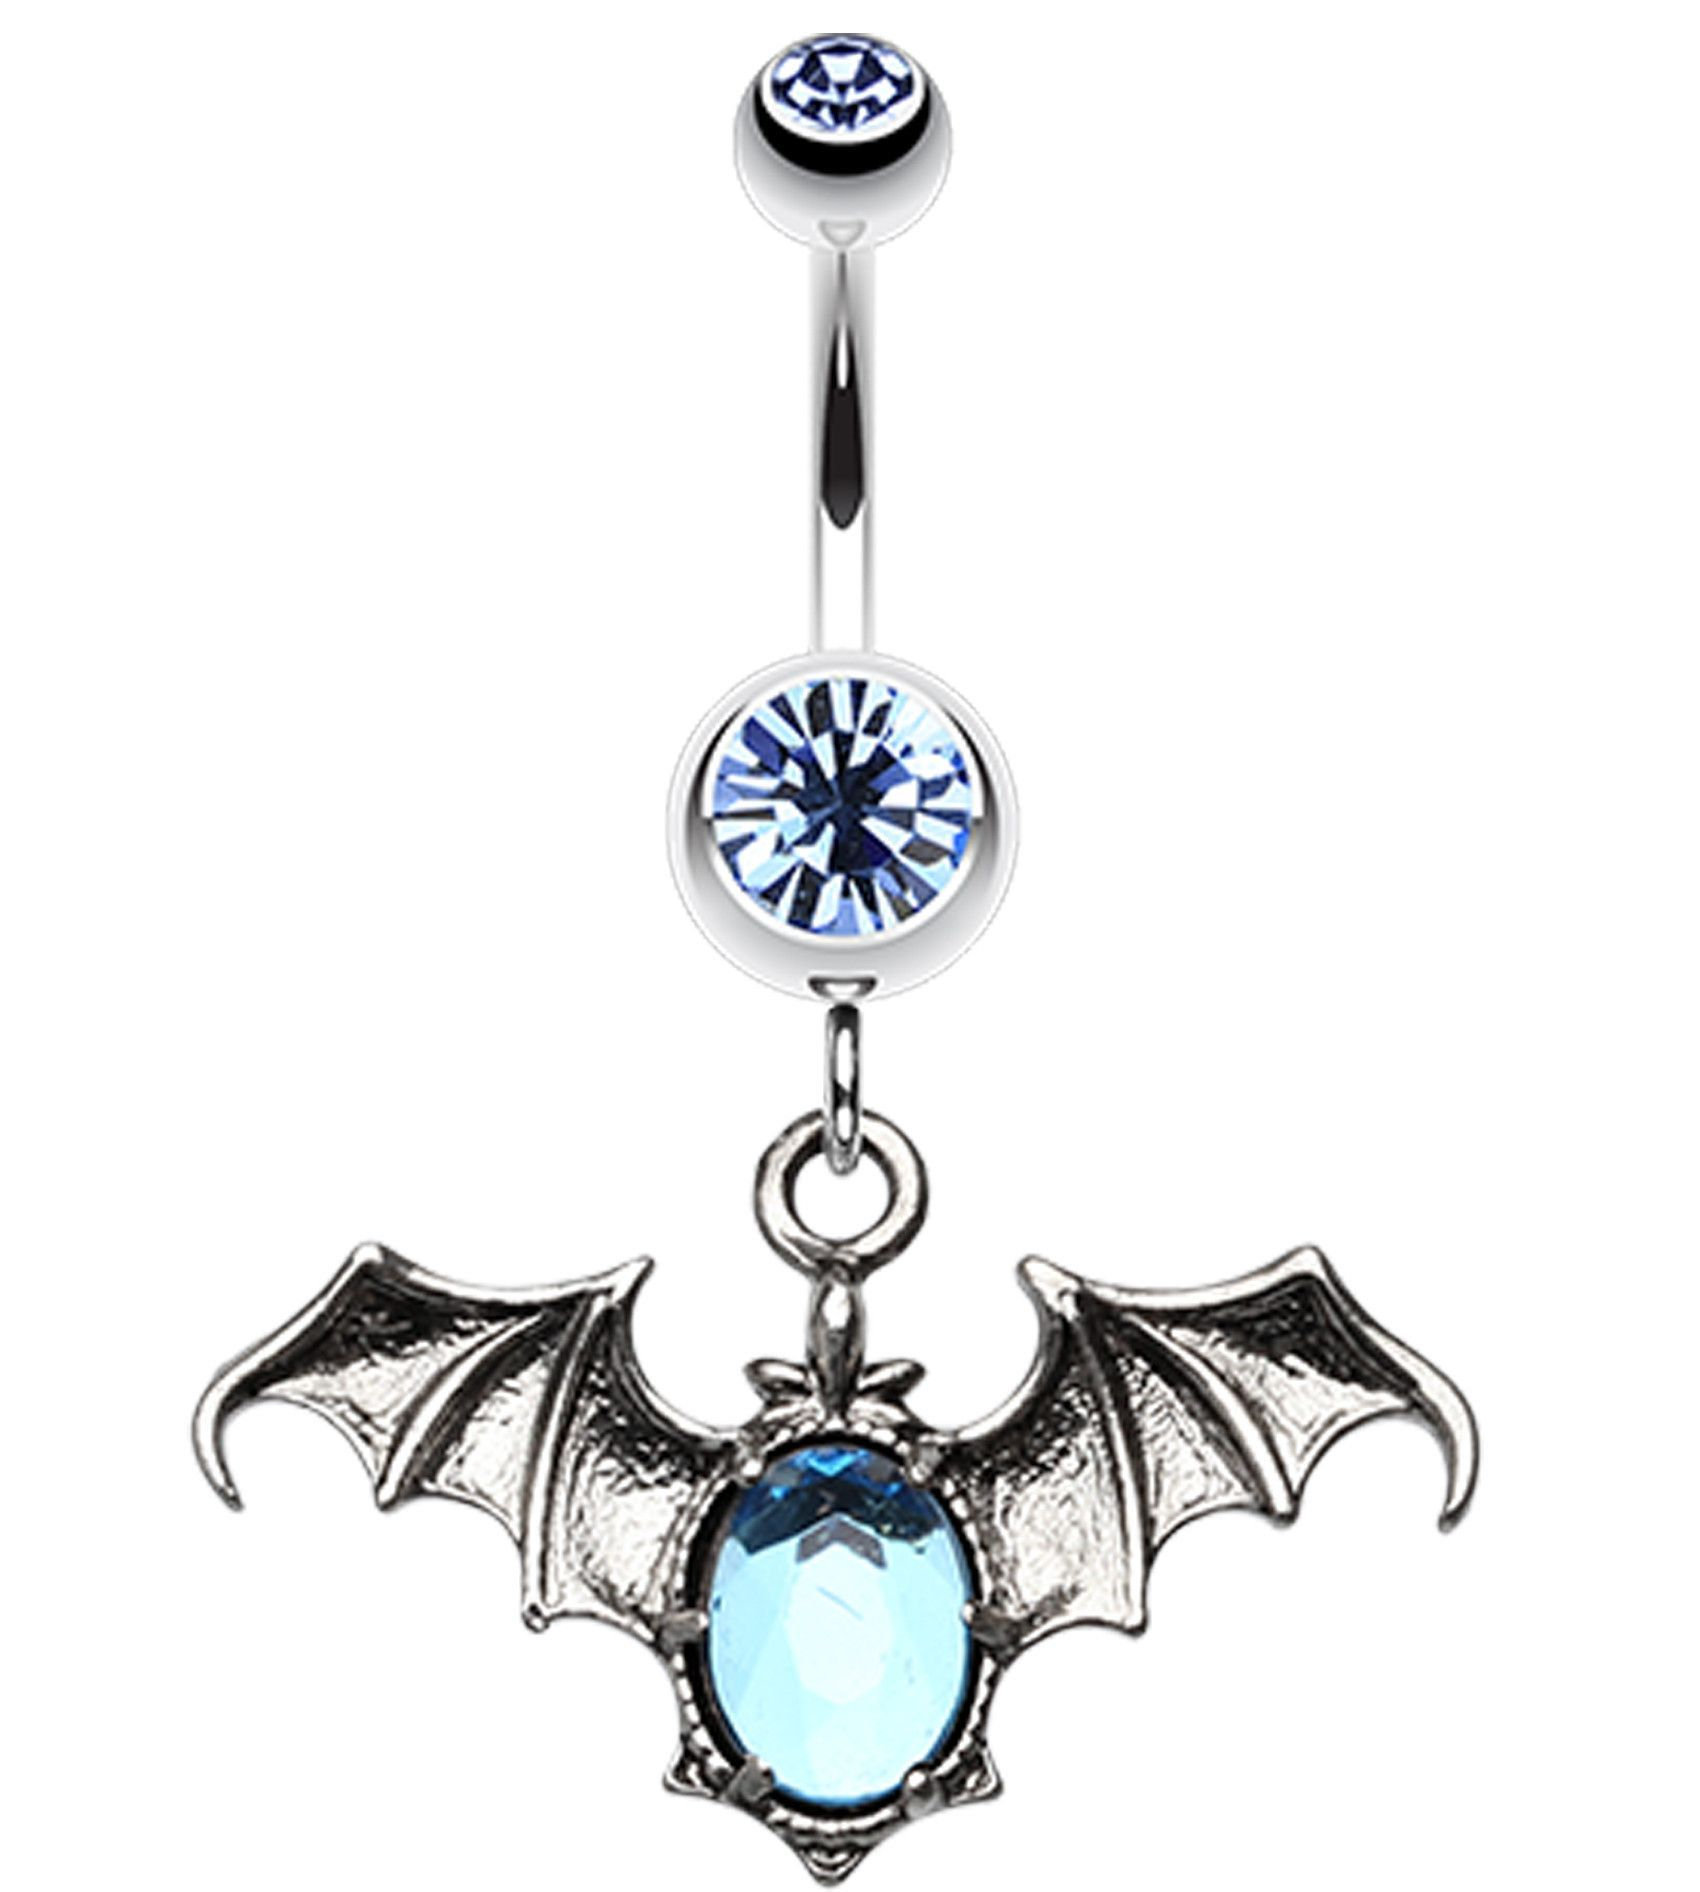 Belly button piercing jewellery  Bat Sparkle Belly Button Ring   GA mm  Light Pink  Sold